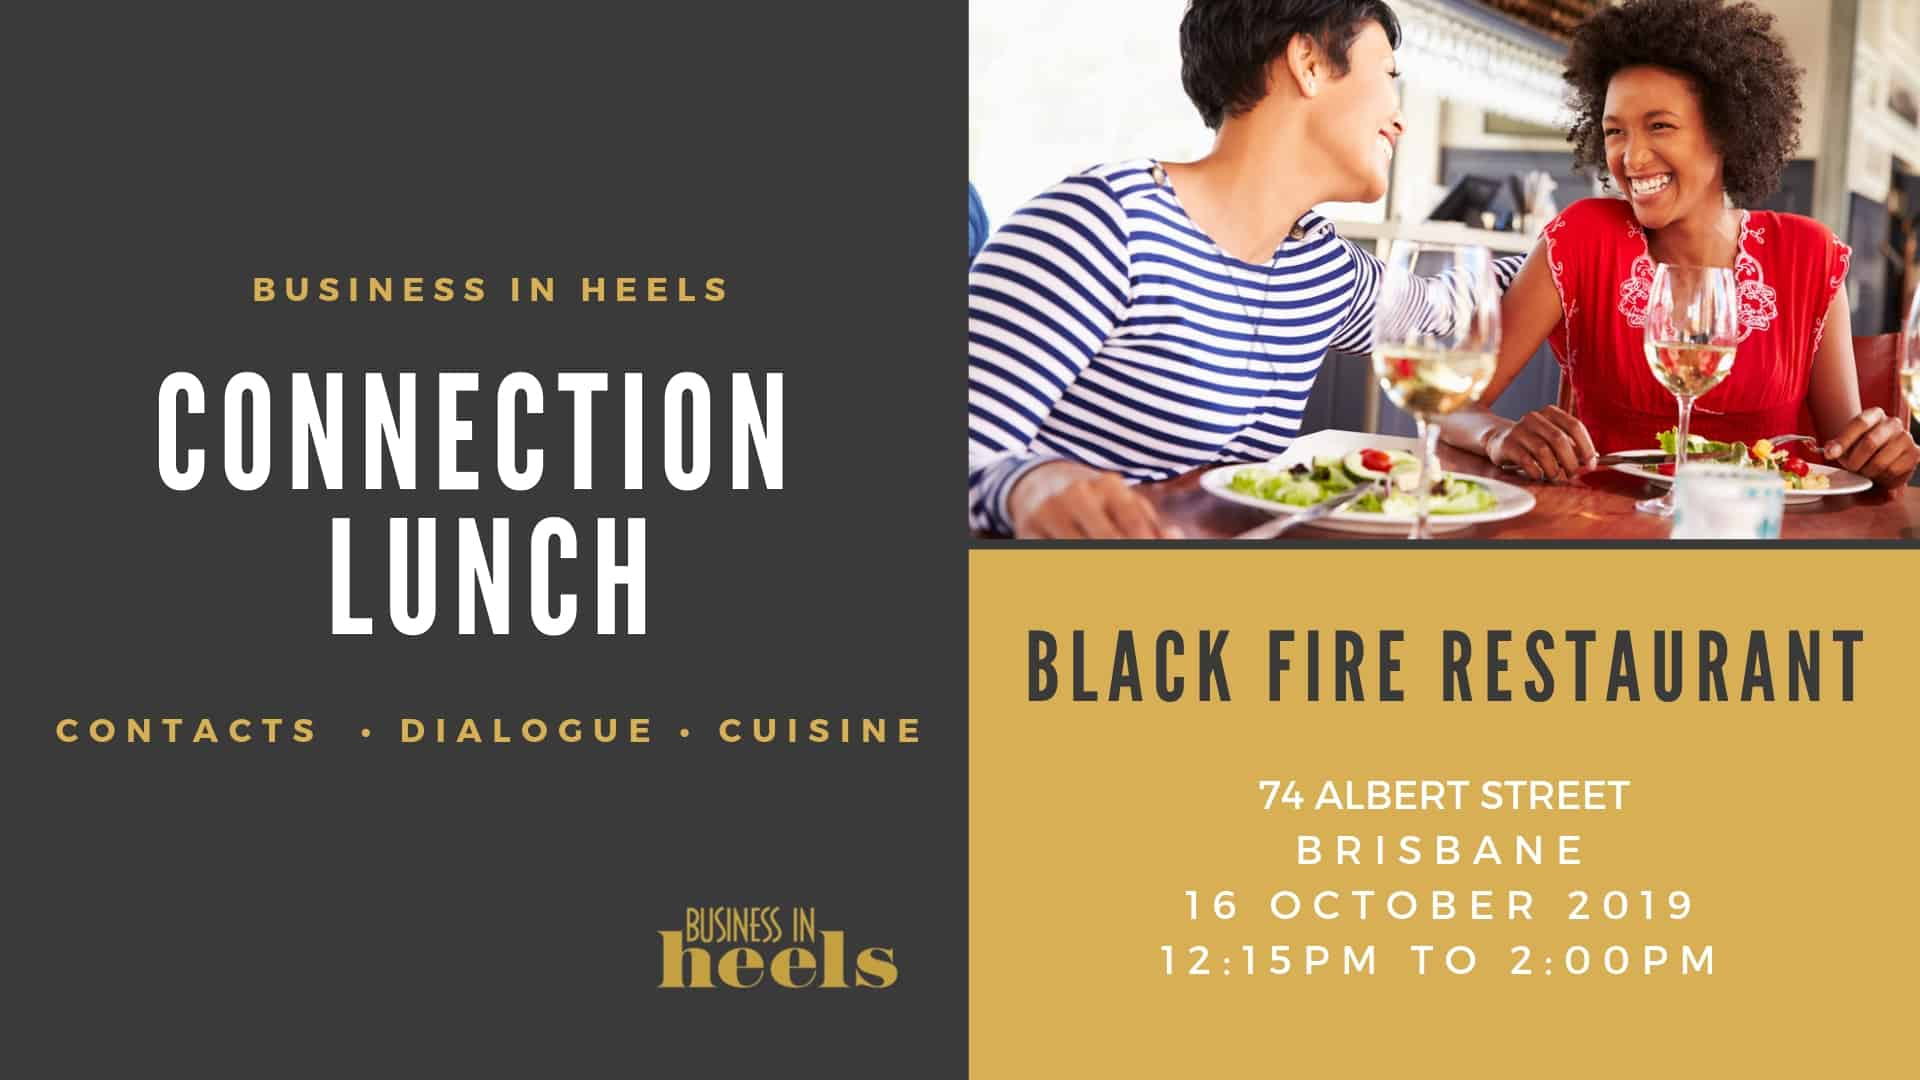 Brisbane Cbd - October 2019 Connection Lunch - Business In Heels Events in Community Calender Sydney October 2019